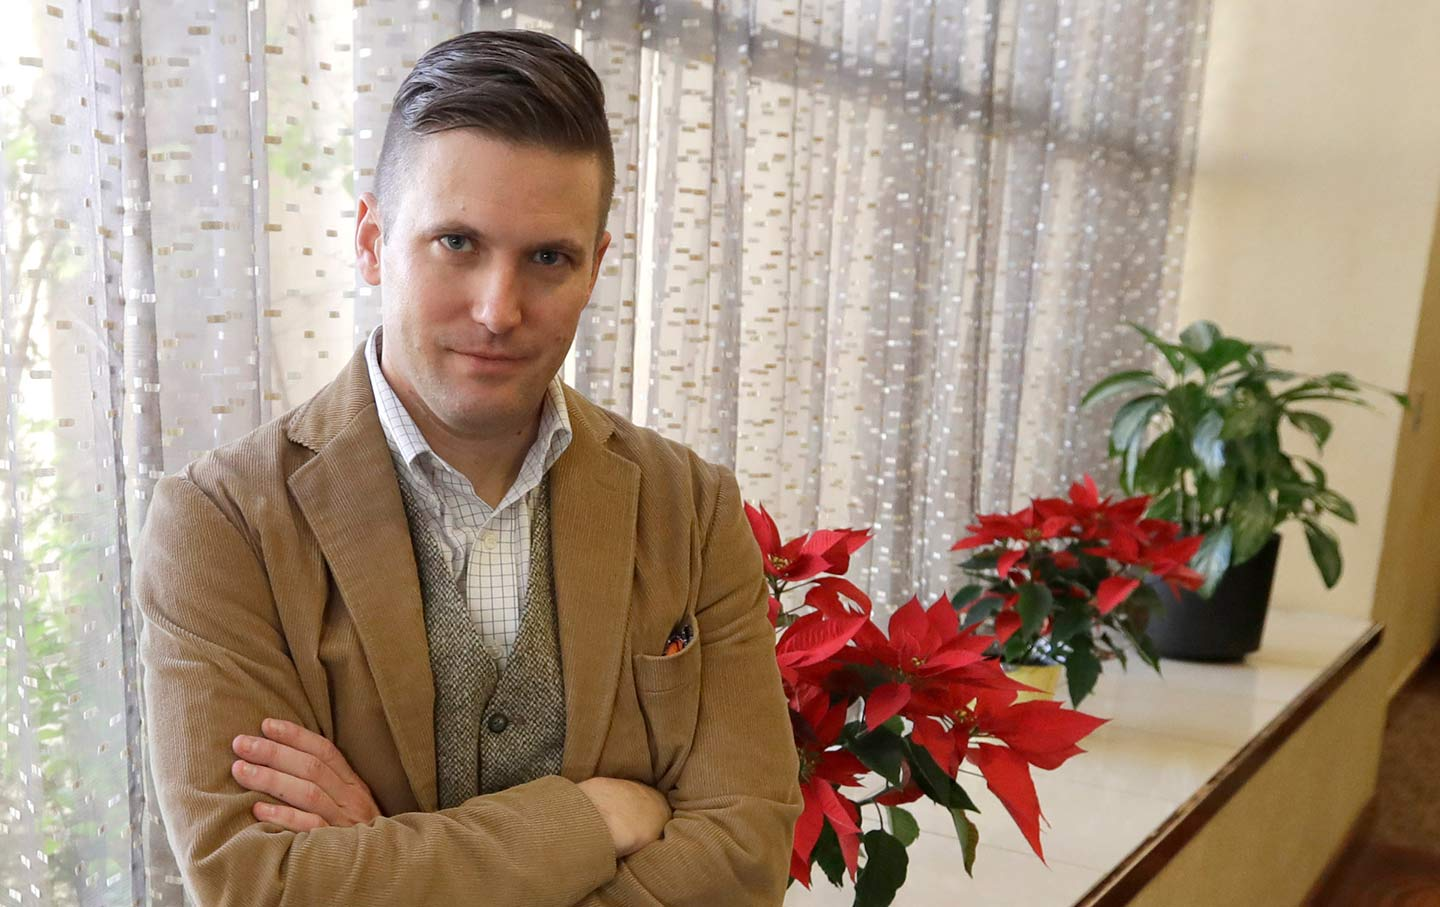 White nationalist Richard Spencer poses between interviews in College Station, Texas, on December 6, 2016. (AP Photo / David J. Phillip)